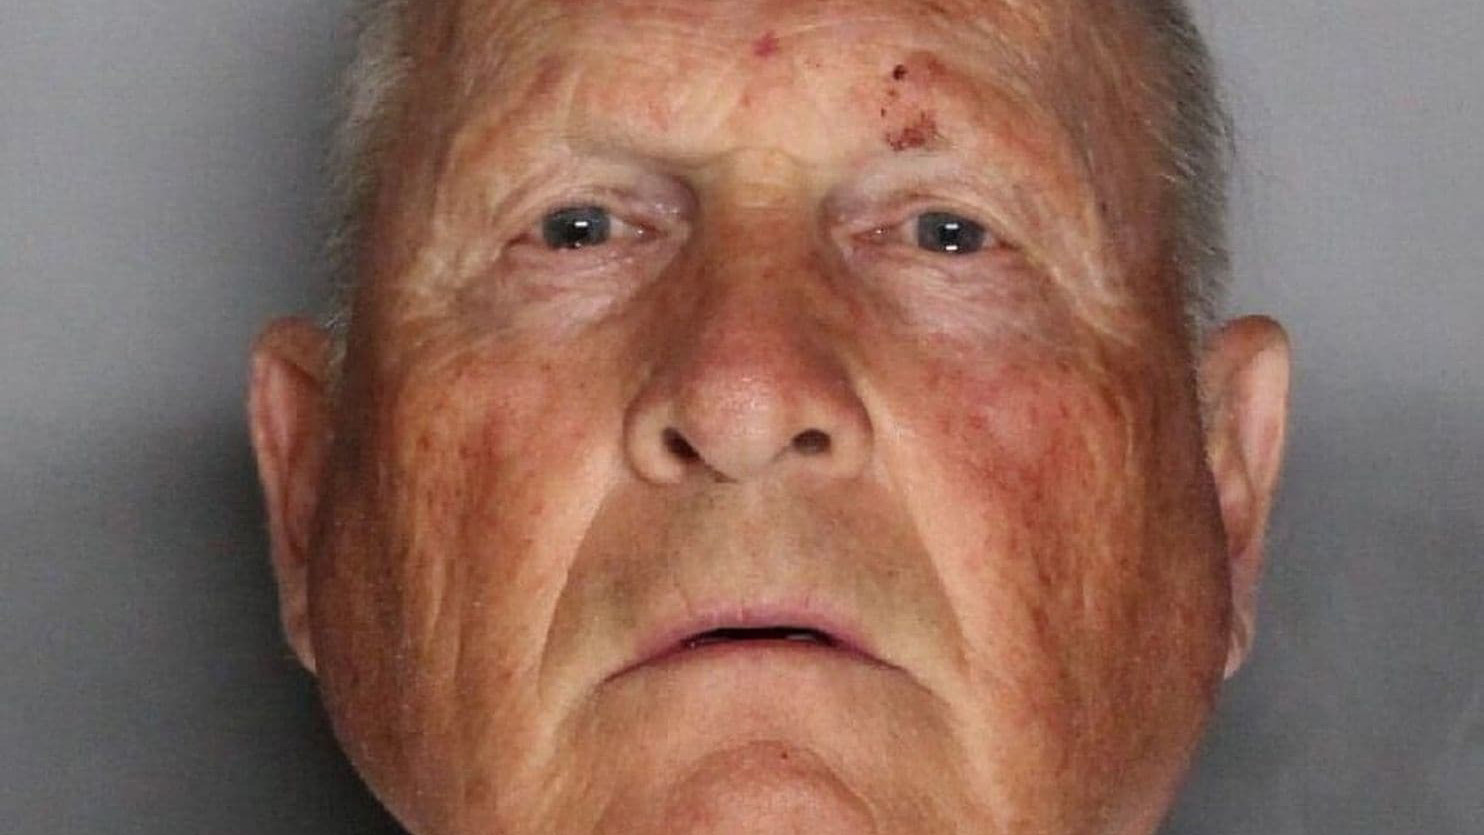 The Golden State Killer and Other Serial Killers Who Mysteriously Stopped Murdering